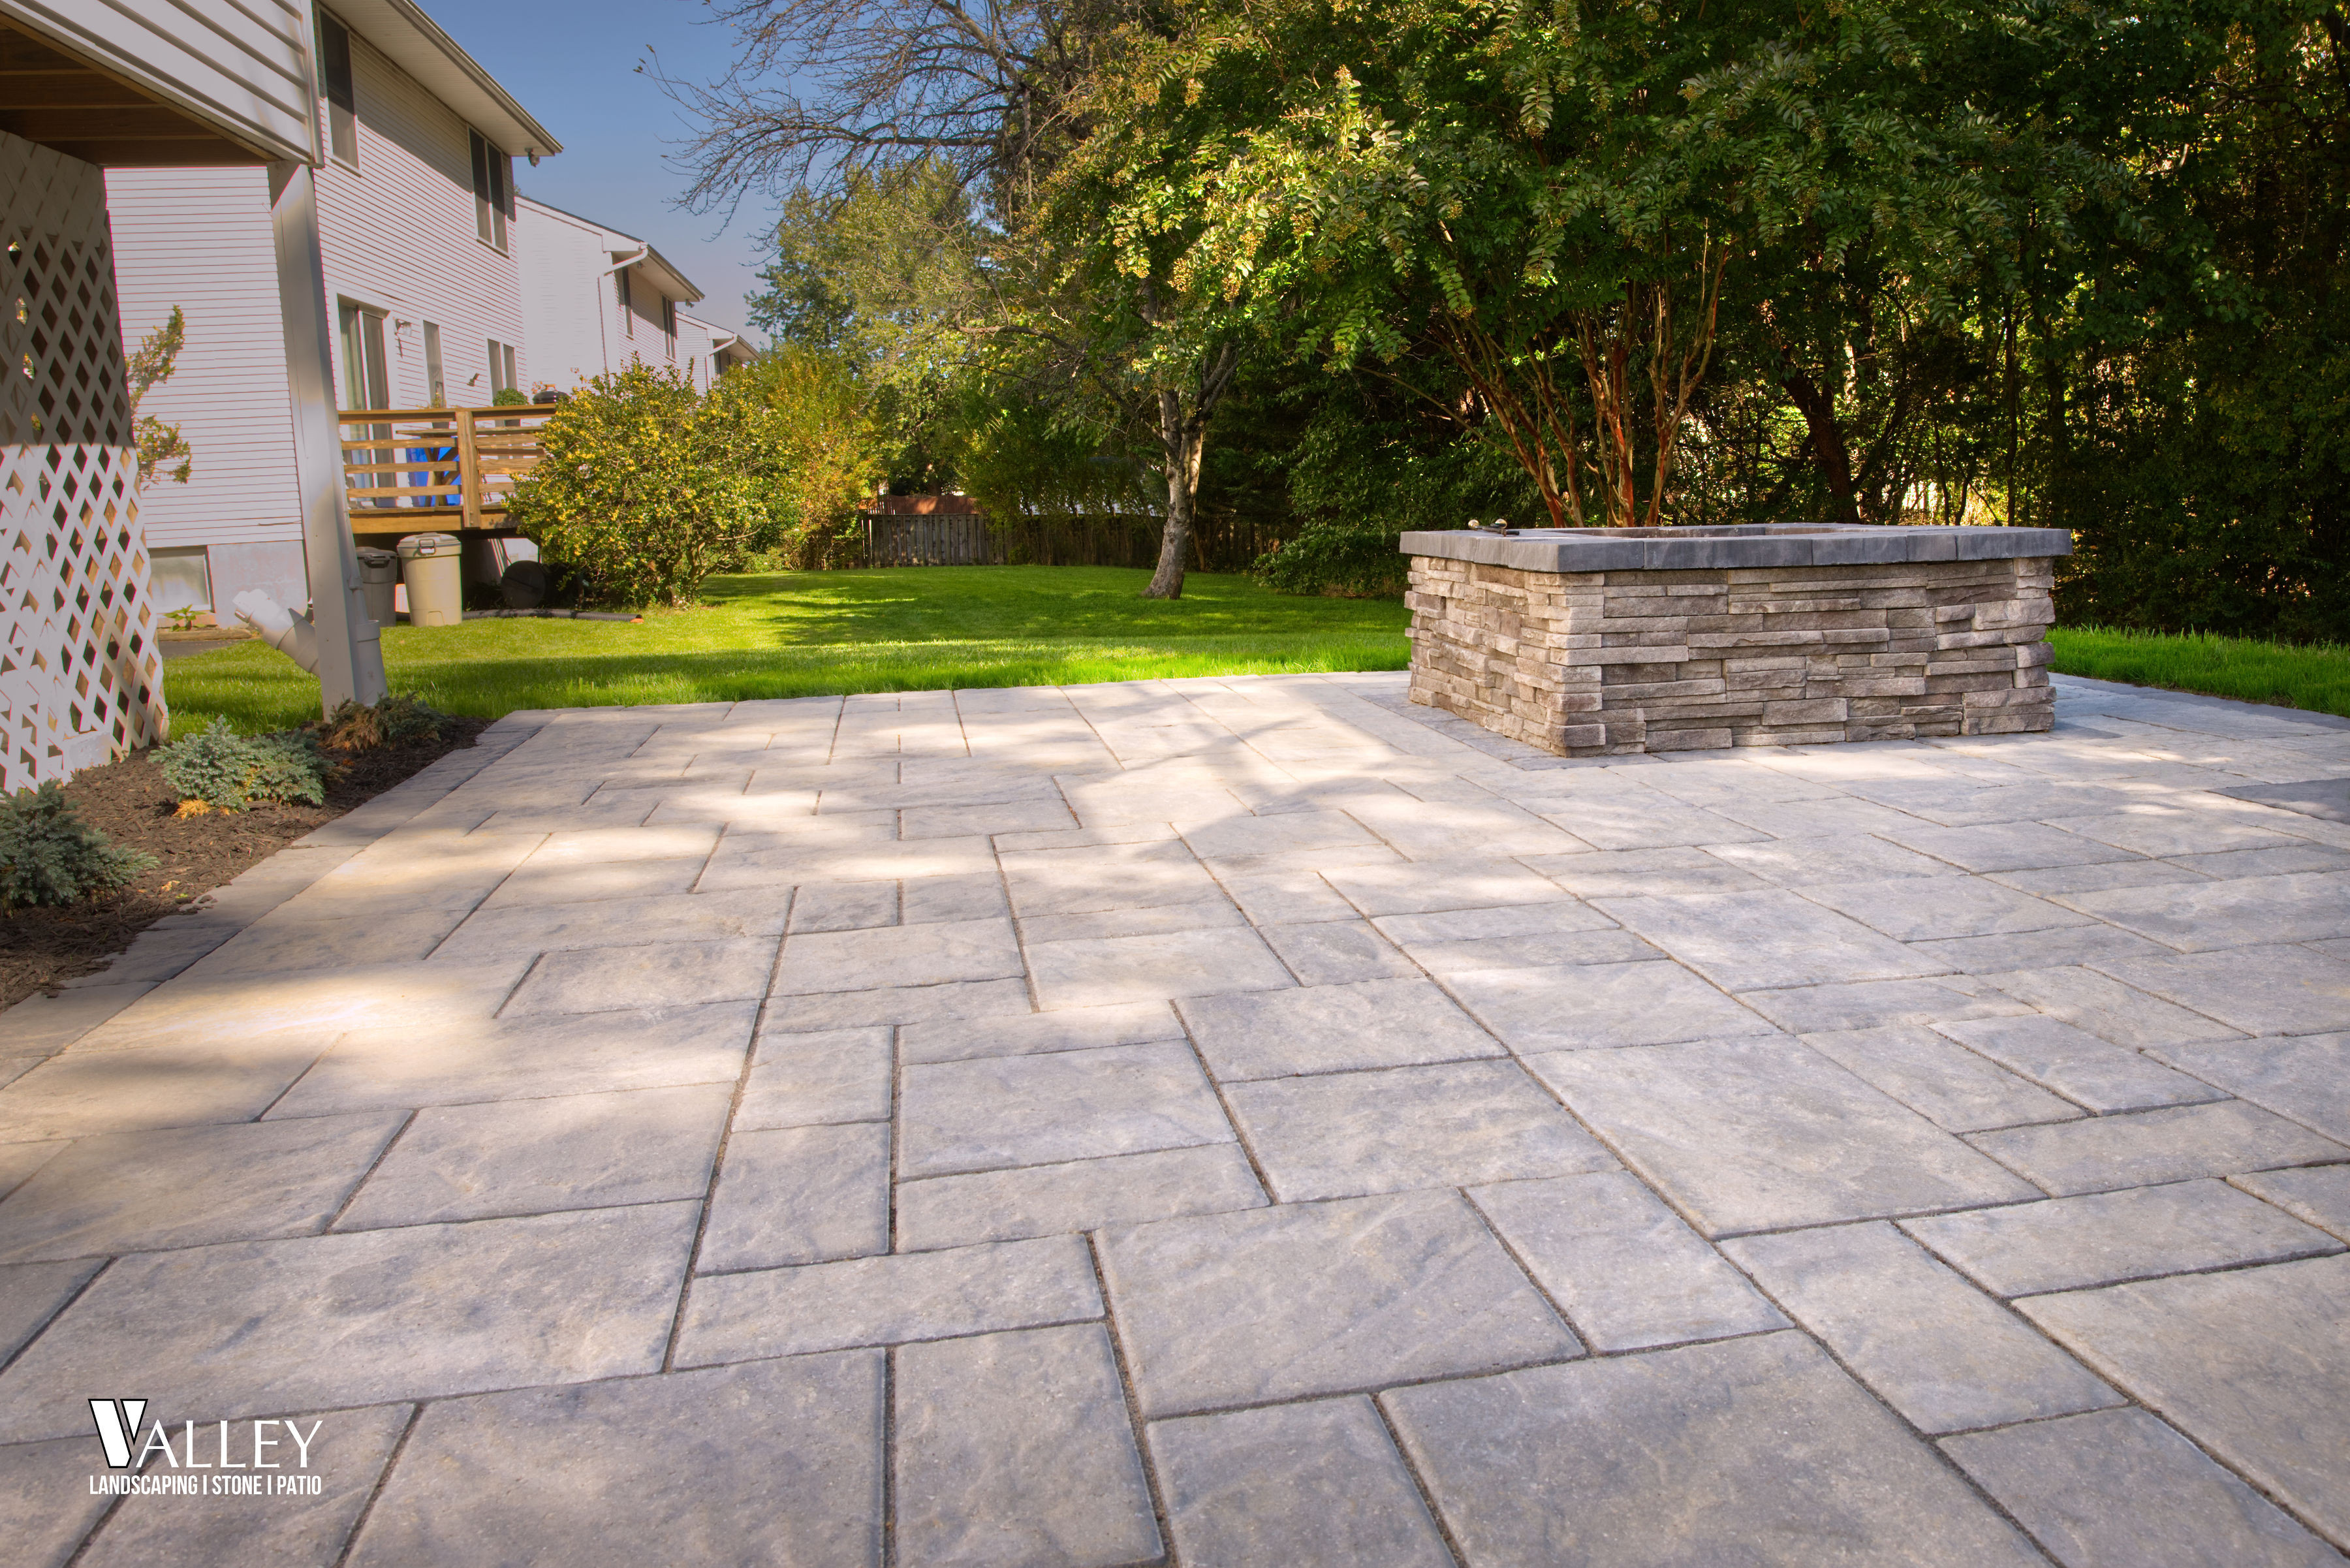 valley landscaping stone patio pro